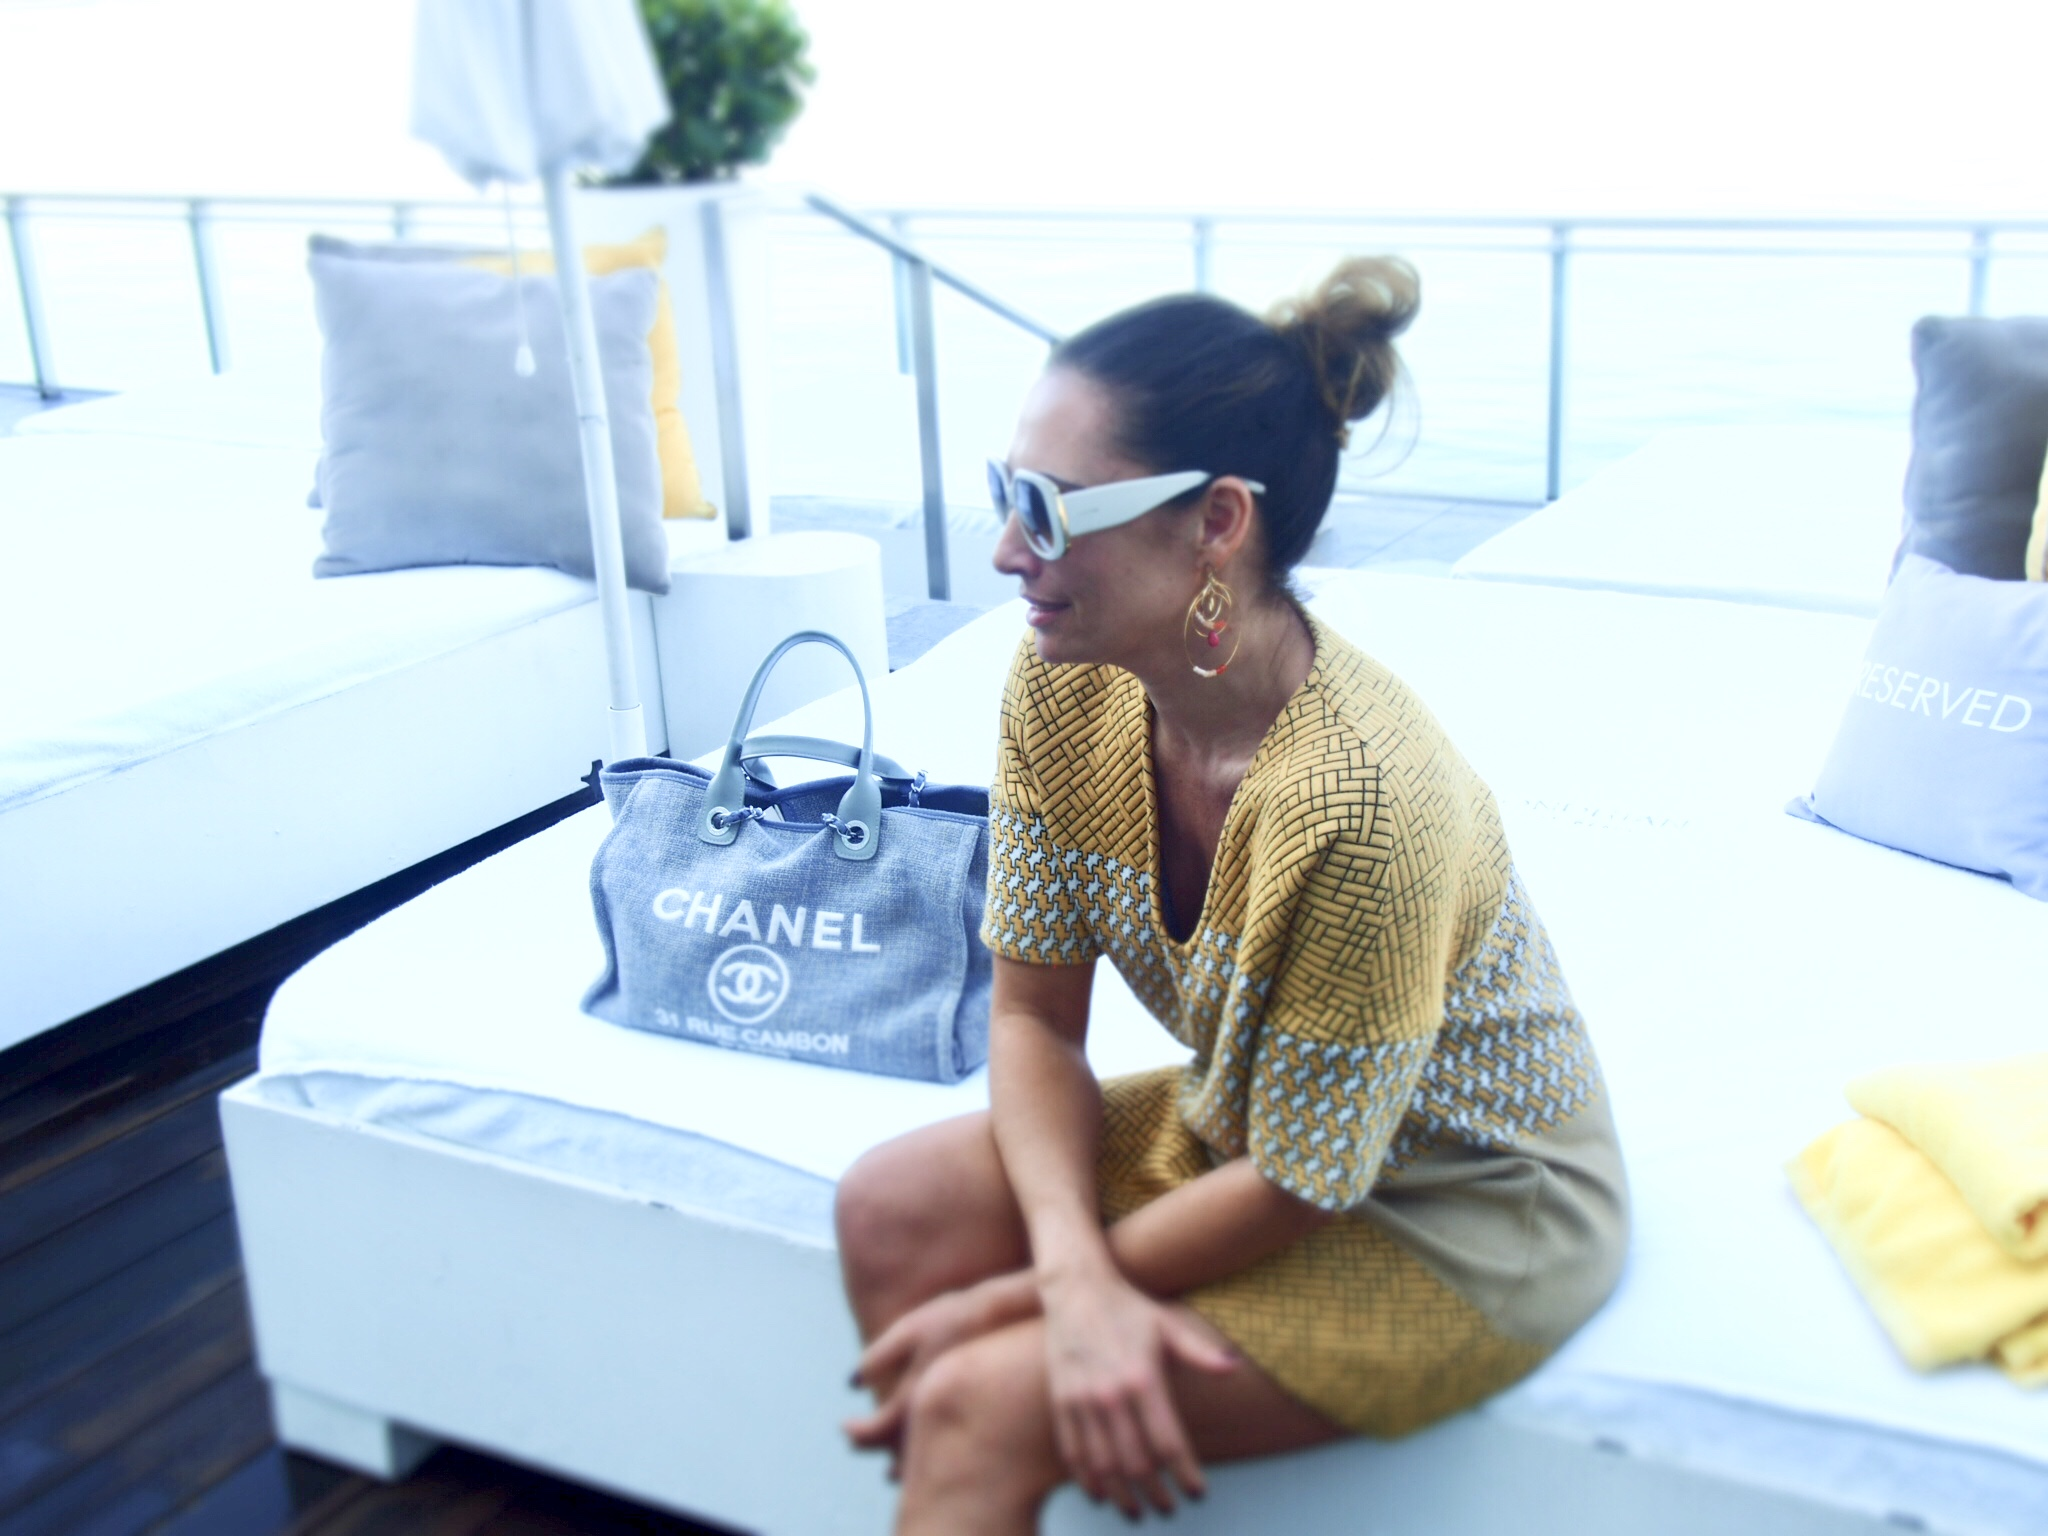 Claire Elizabeth sitting on a sun lounger next to a Blue Chanel Bag in a yellow dress overlooking Miami Biscayne Bay at the Mondrian South Beach